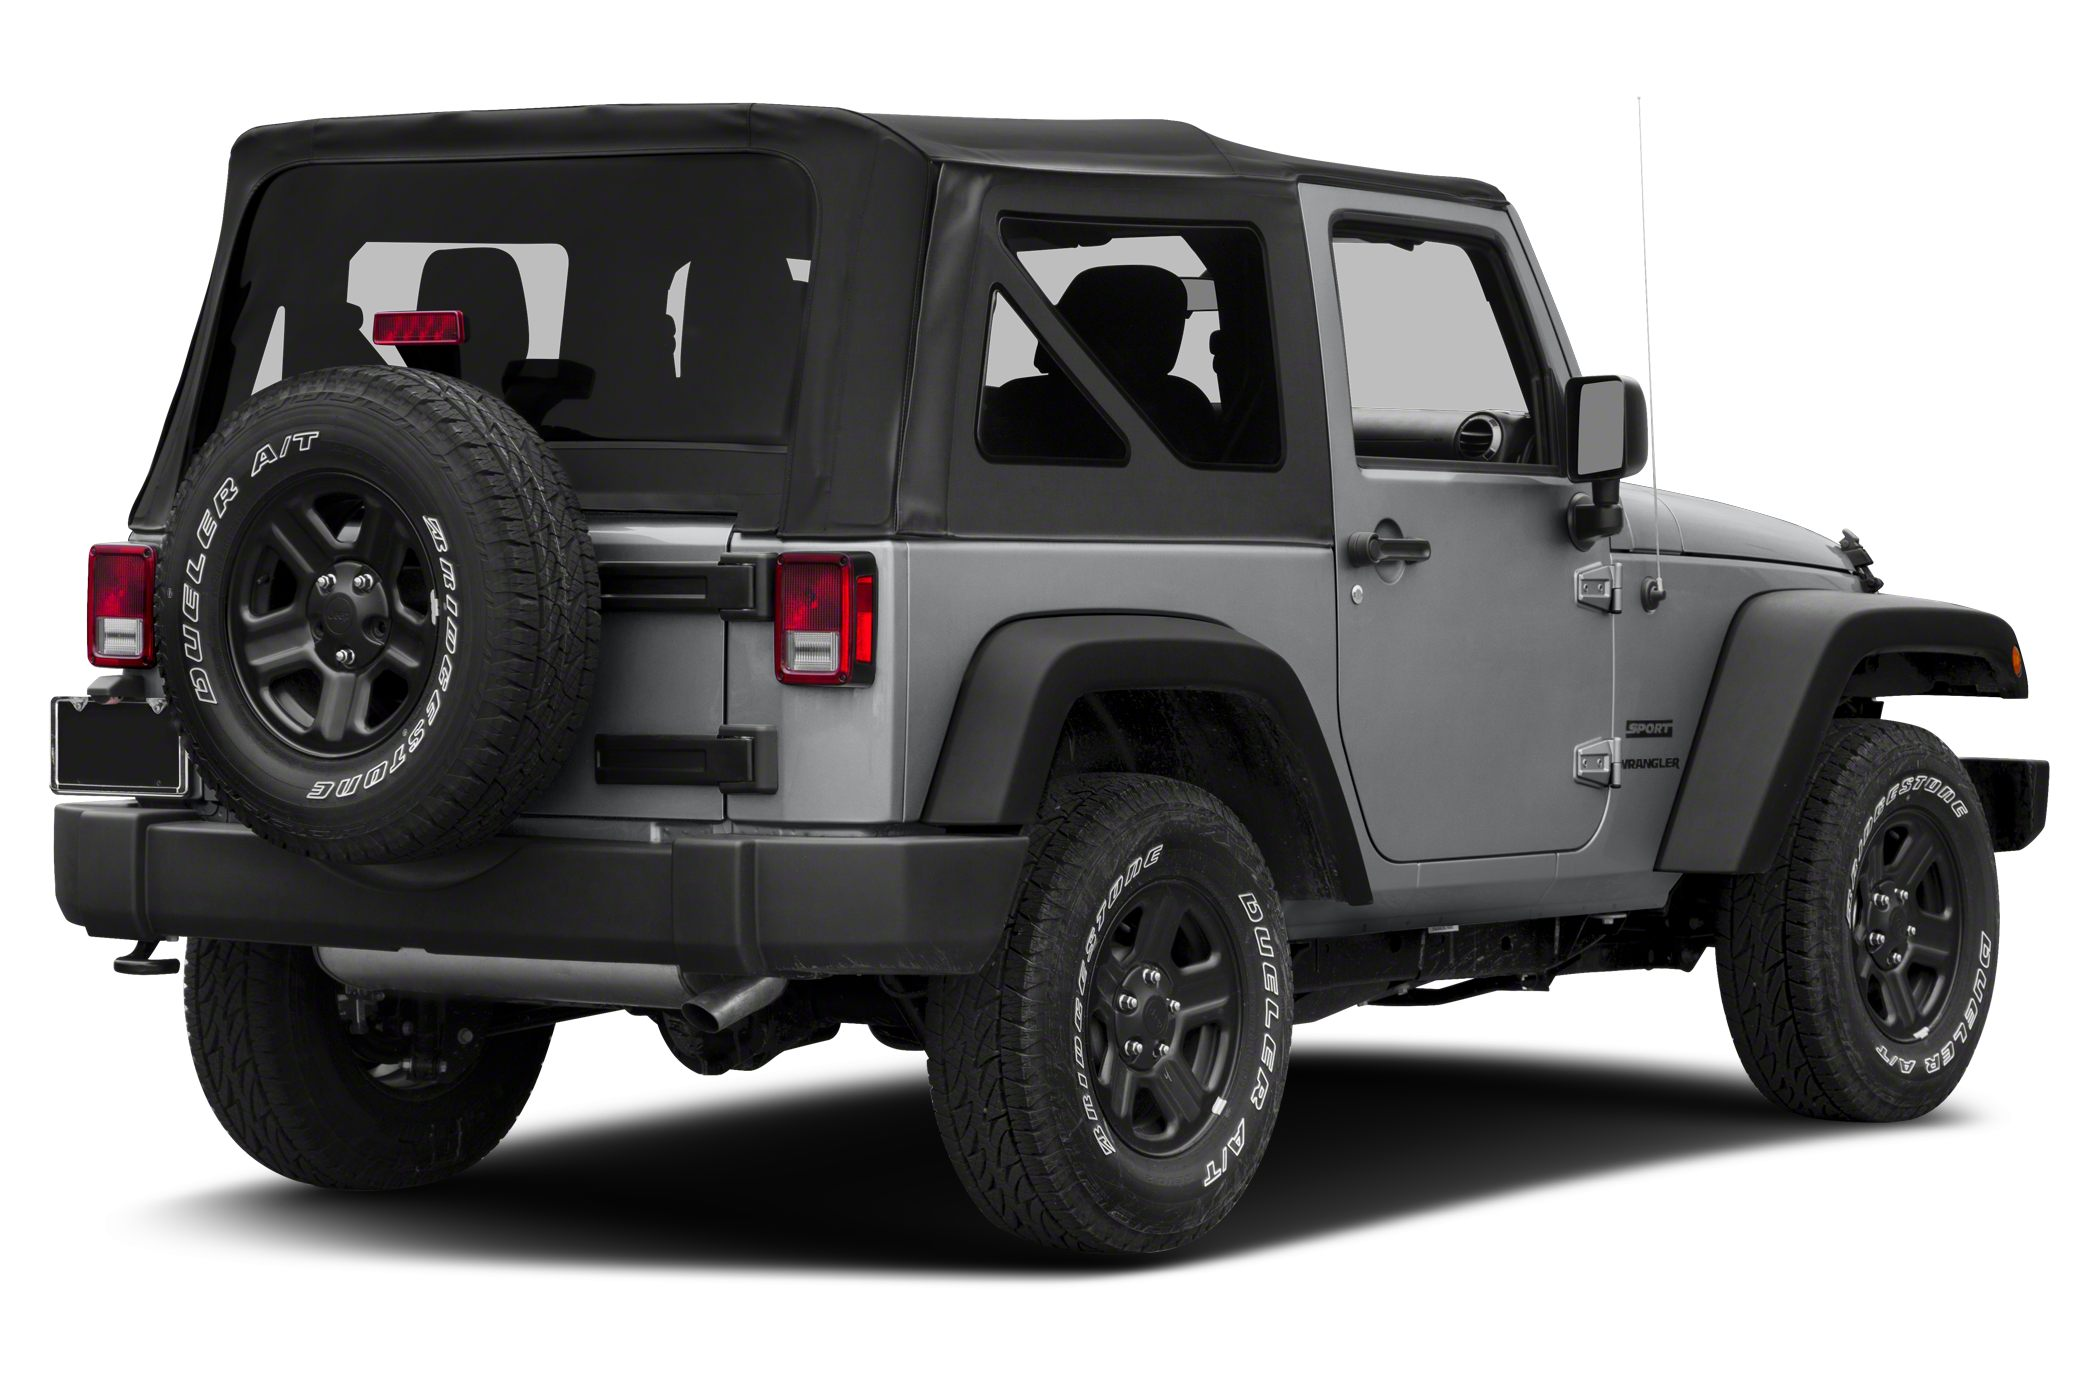 Jeep 2 Door In Florida For Sale ▷ Used Cars Buysellsearch